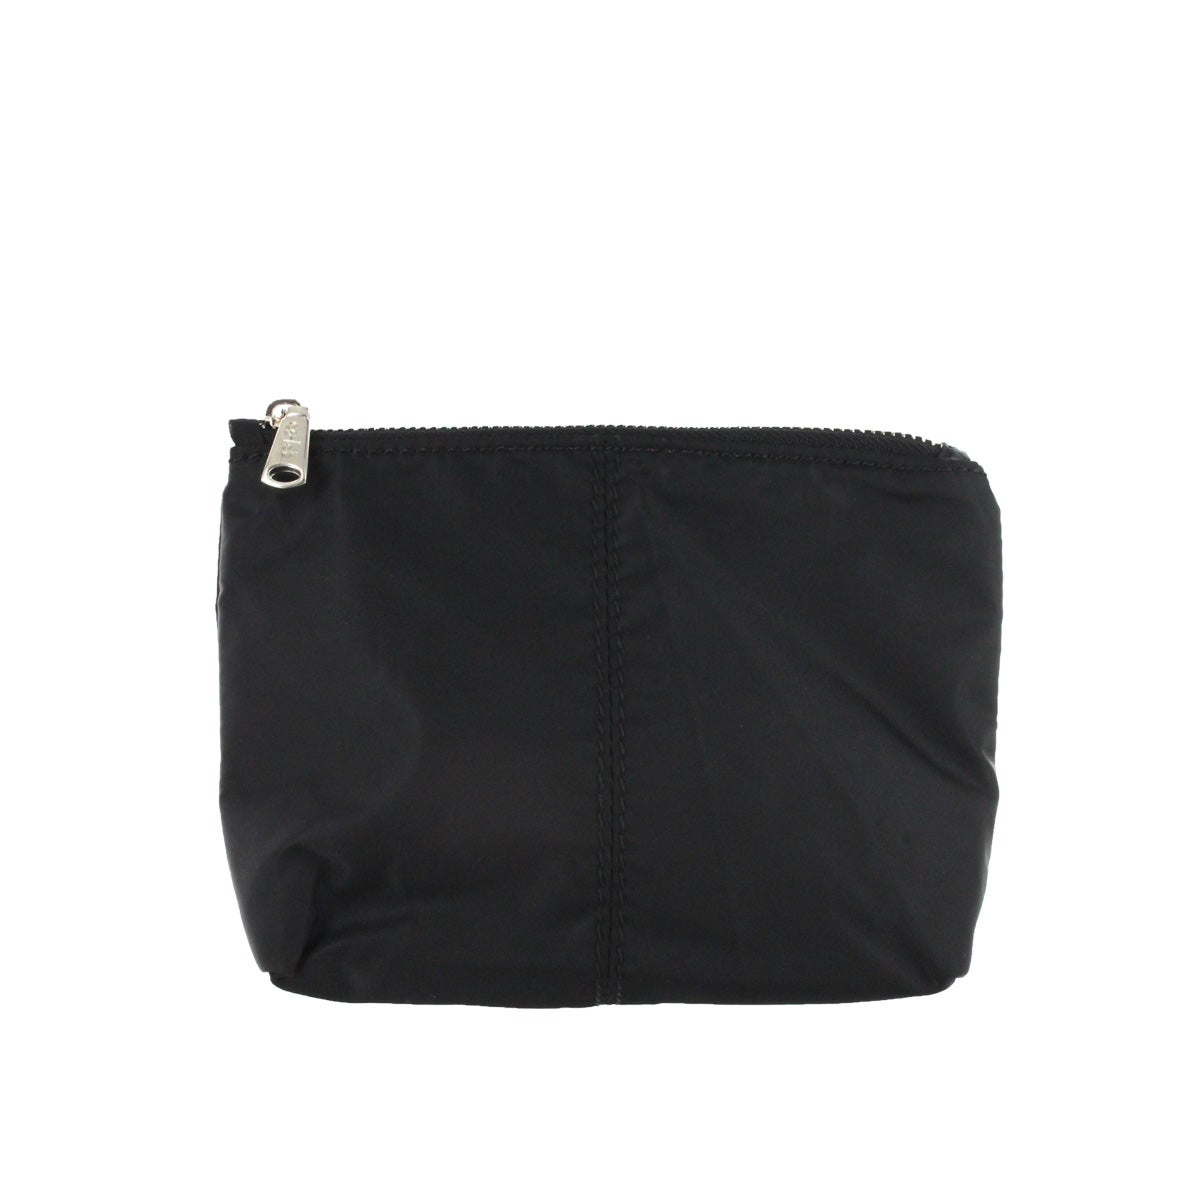 Lds Cosmetics & Such black cosmetic bag